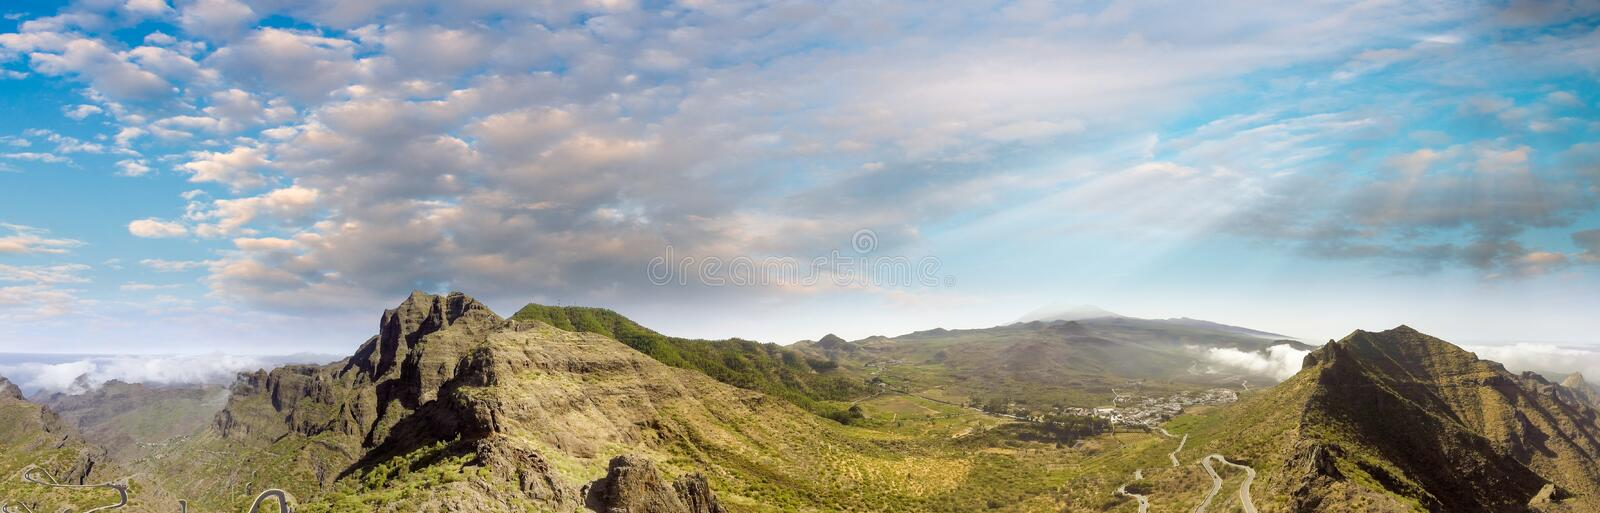 Blue sky over beautiful green mountains, aerial view royalty free stock photos